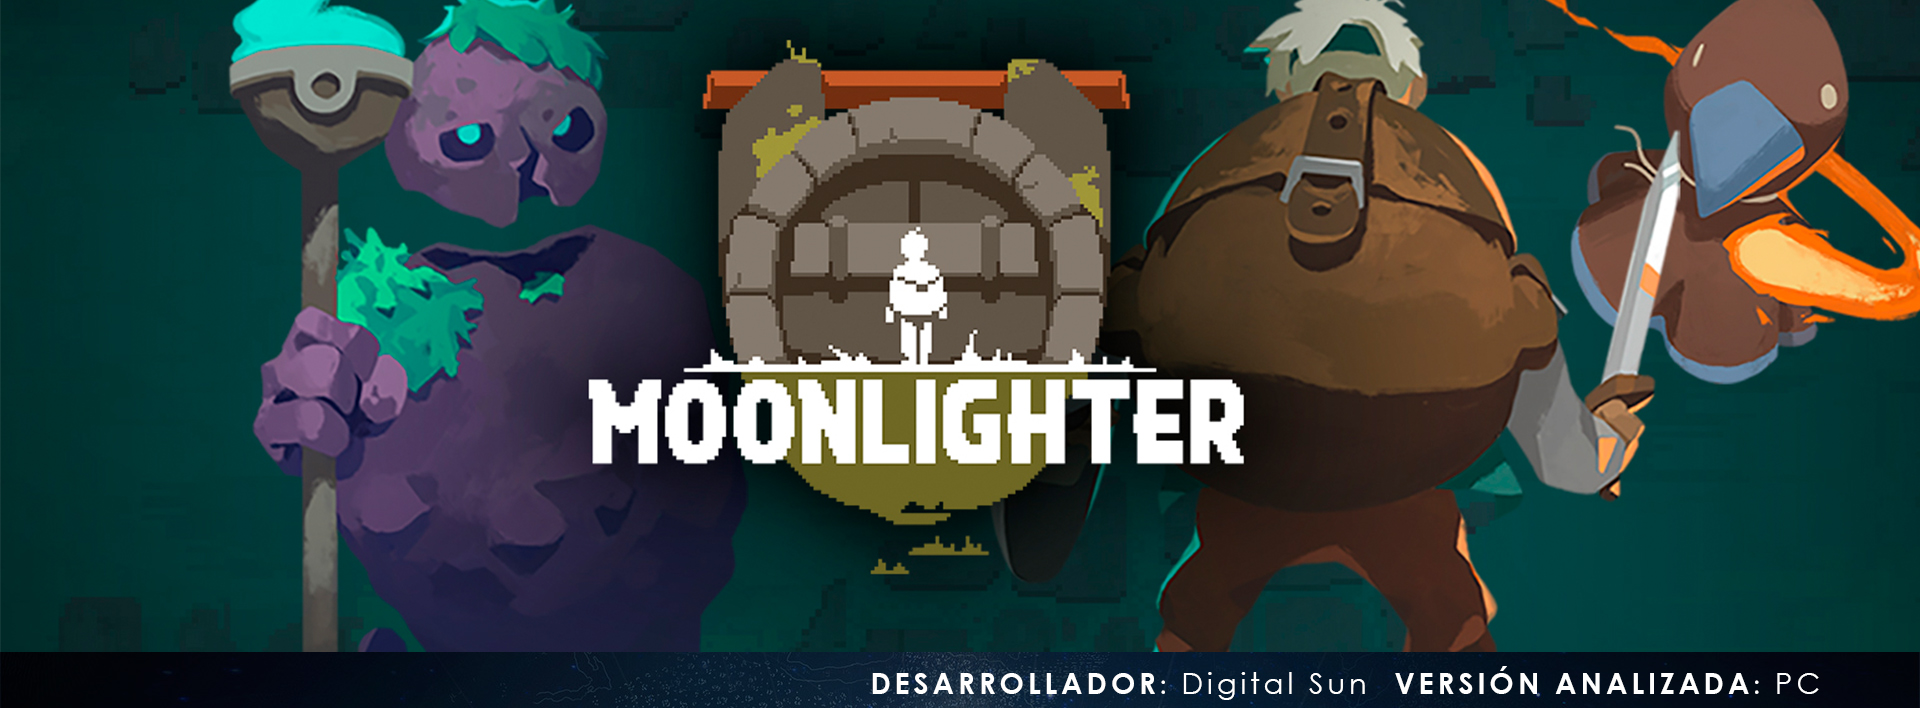 Moonlighter front antihype